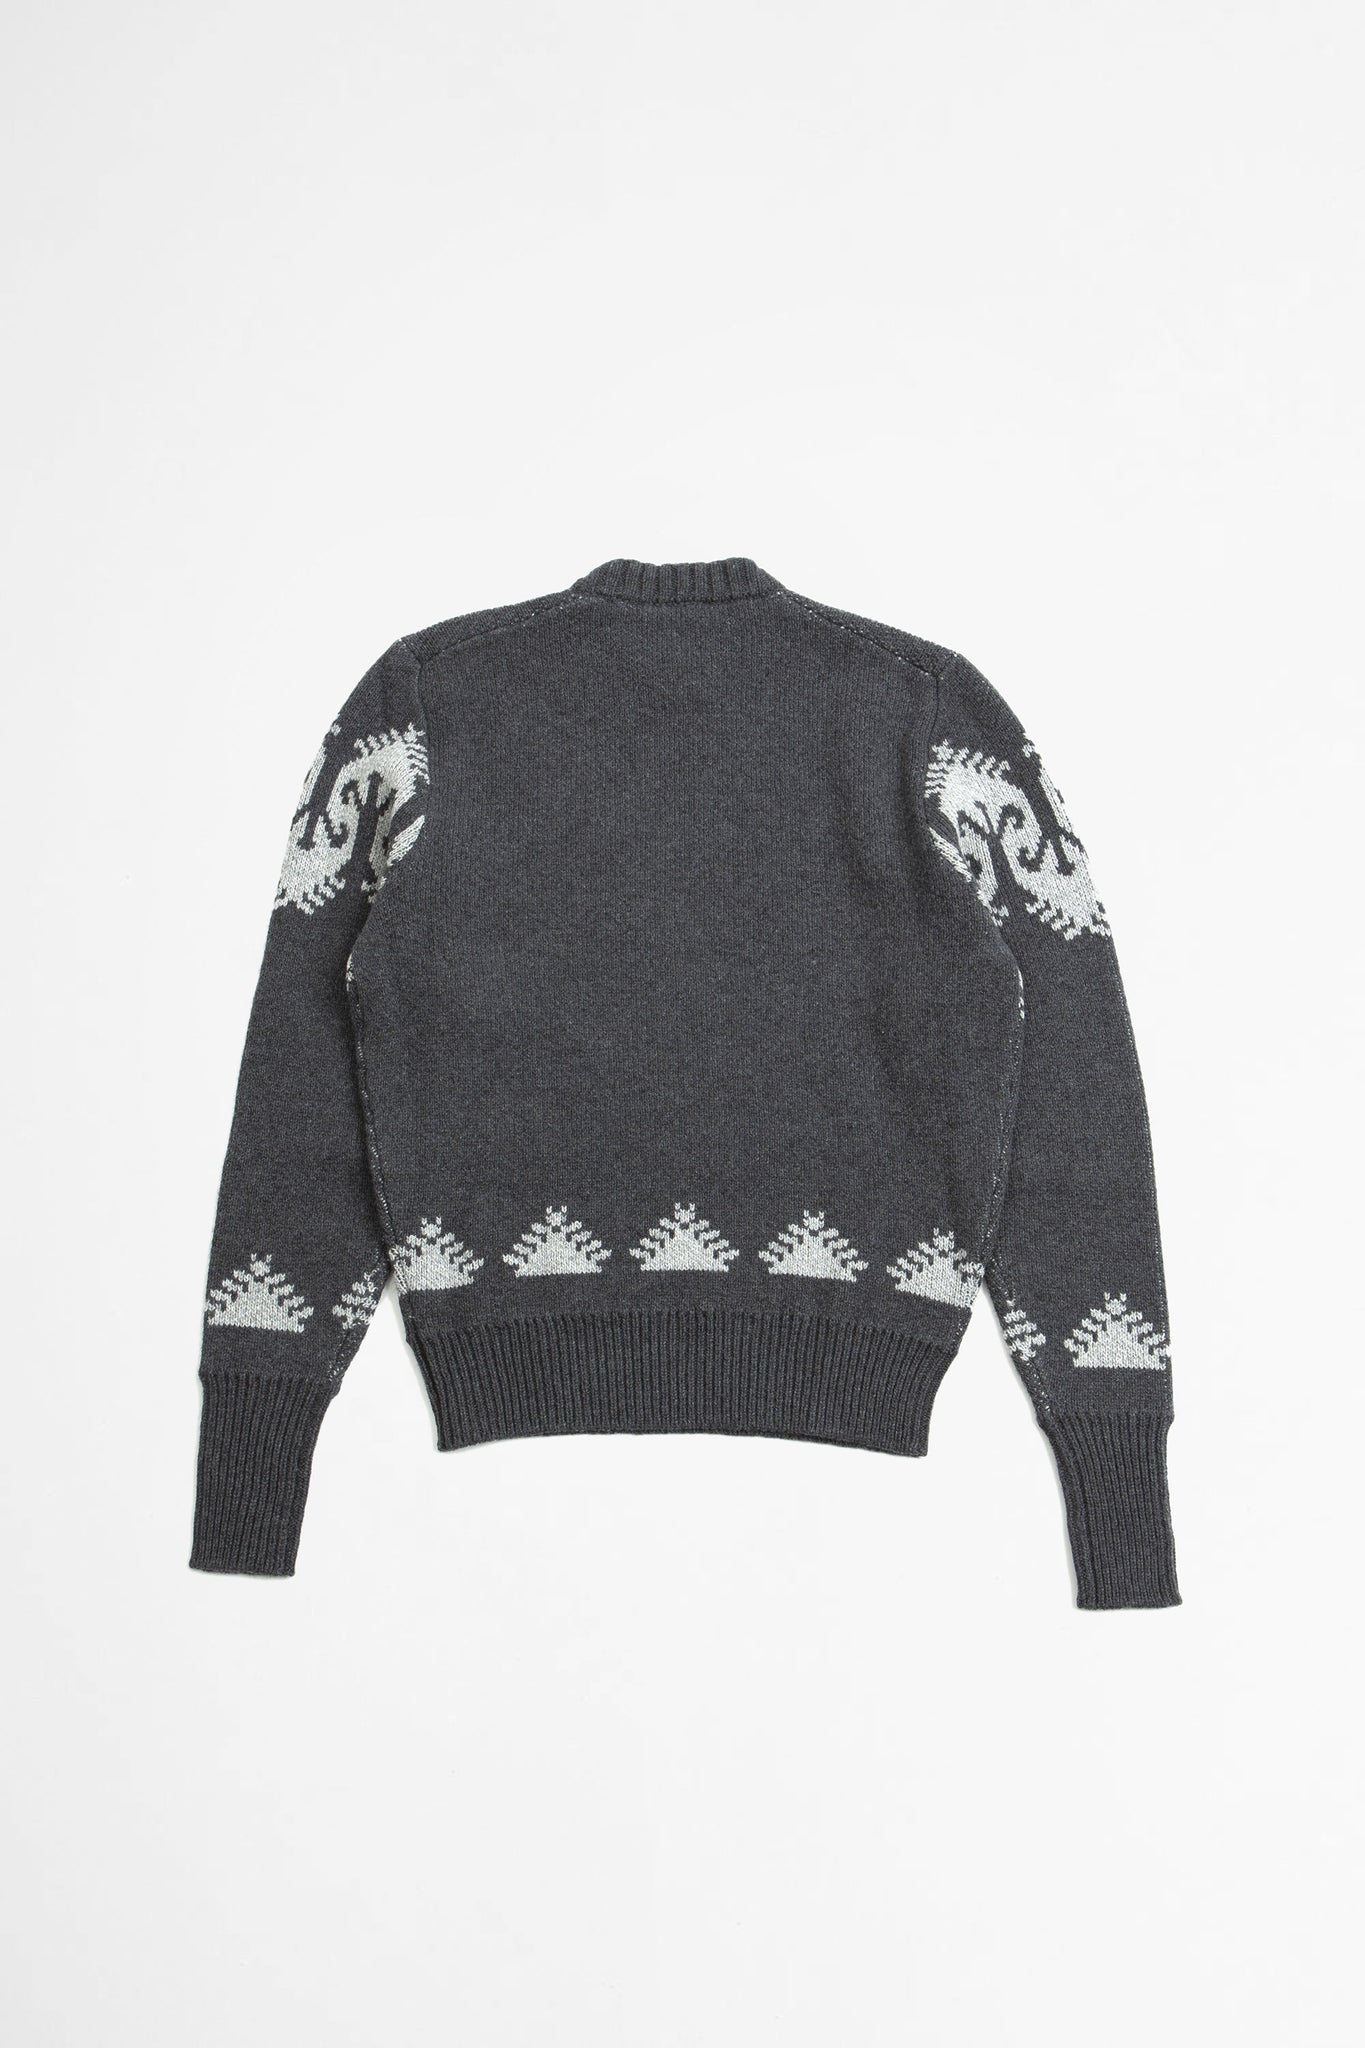 Sweater jean grey/chine grey